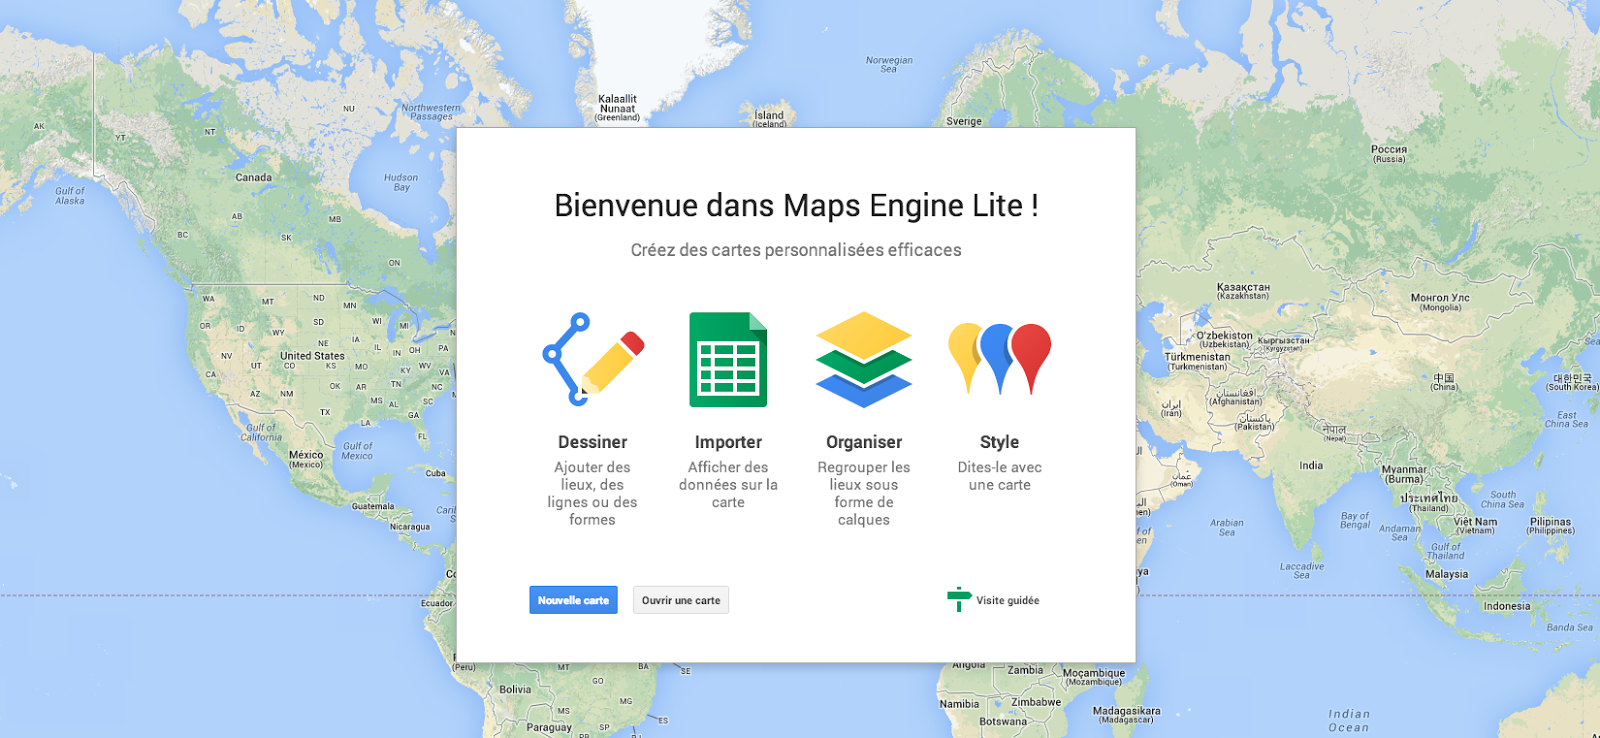 lancement de google maps engine lite beta en fran ais forums des produits google. Black Bedroom Furniture Sets. Home Design Ideas